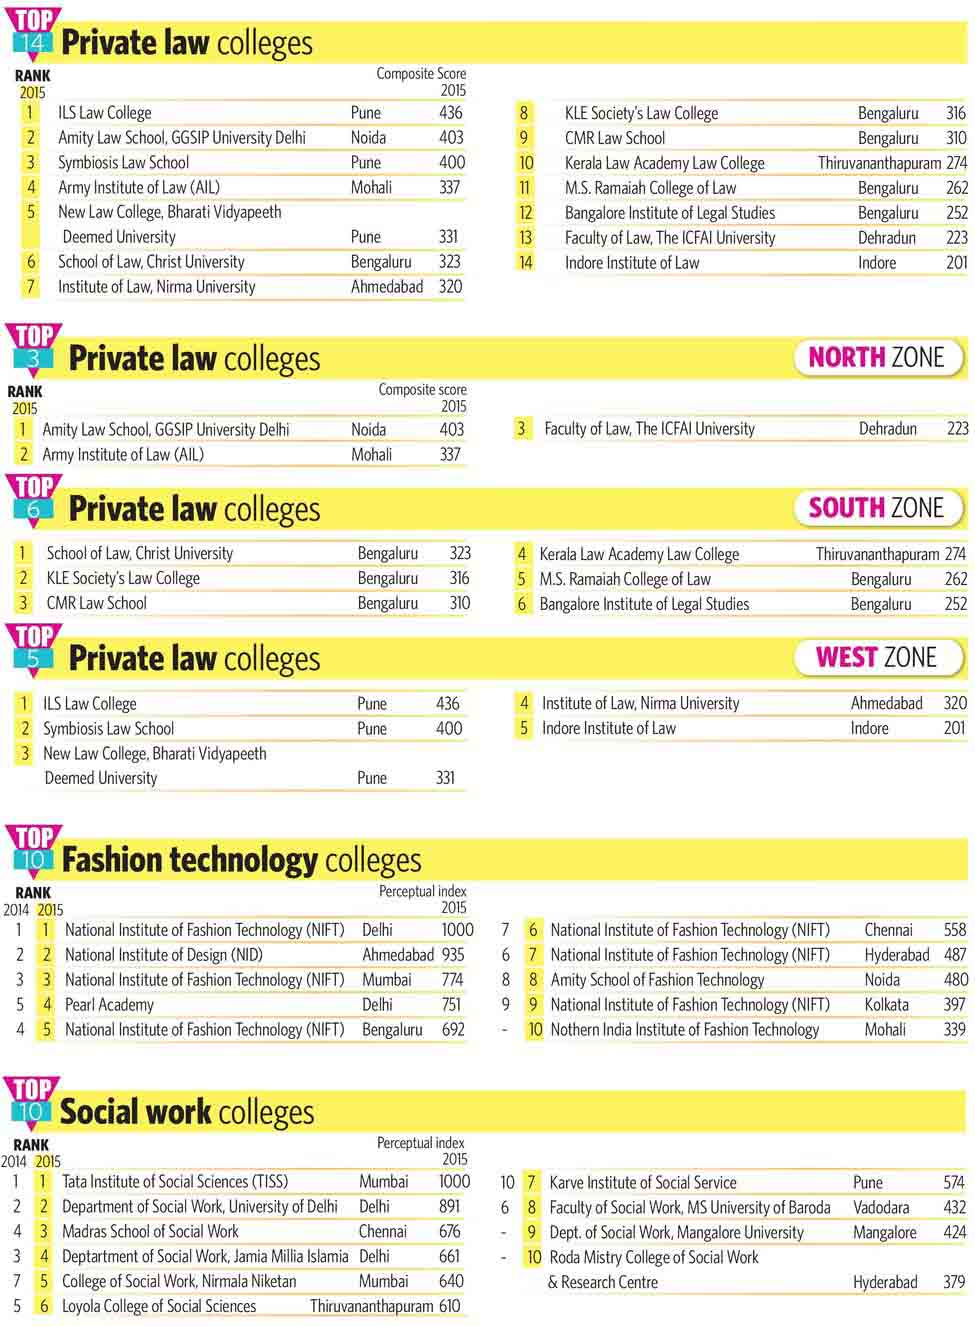 86-Private-law-colleges